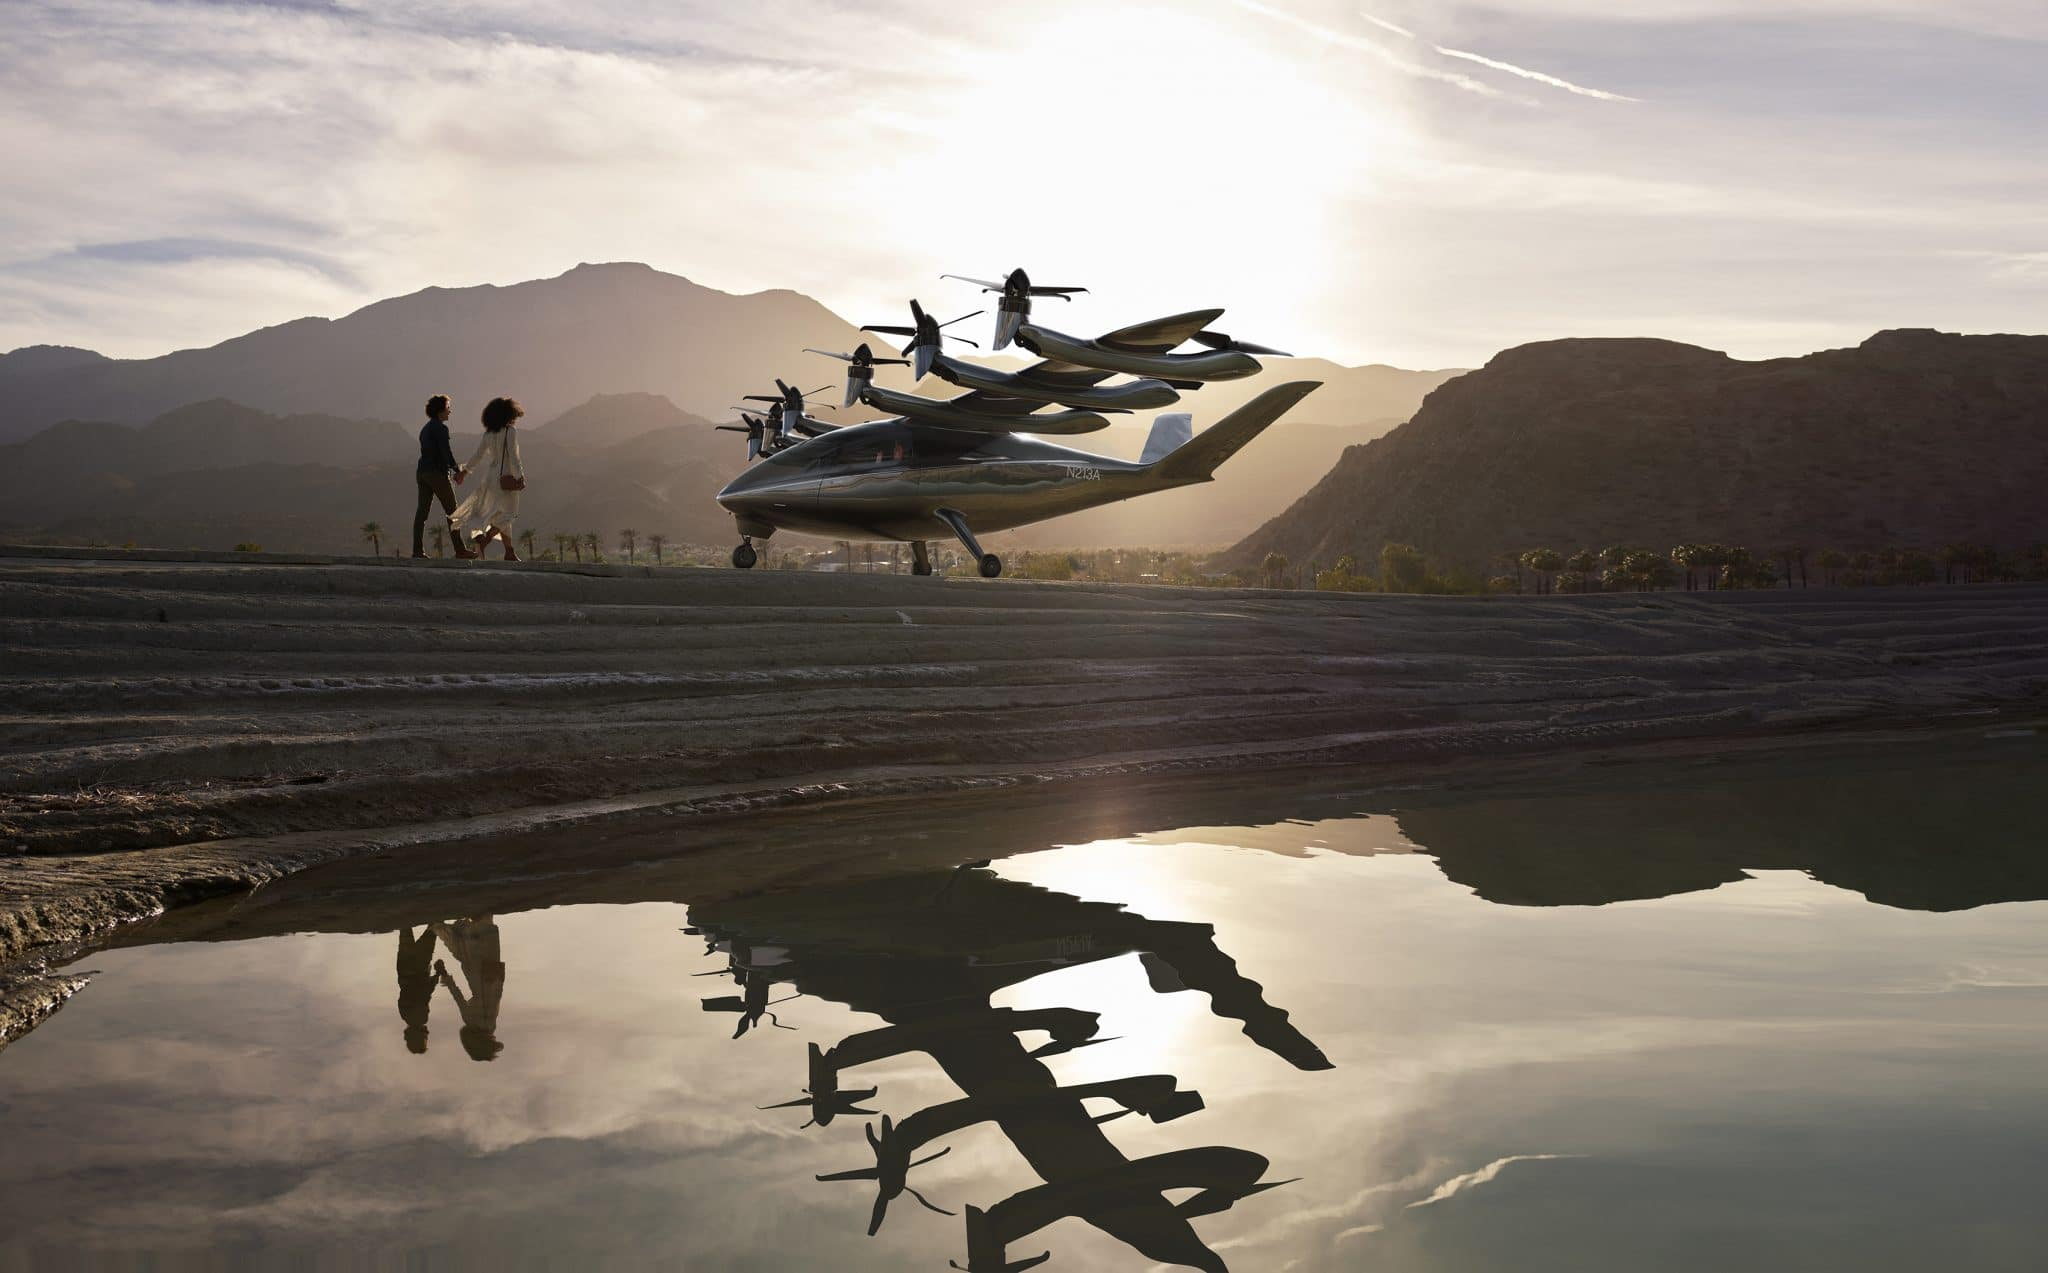 Small eVTOL landing in front of mountains. Two people stand in front.